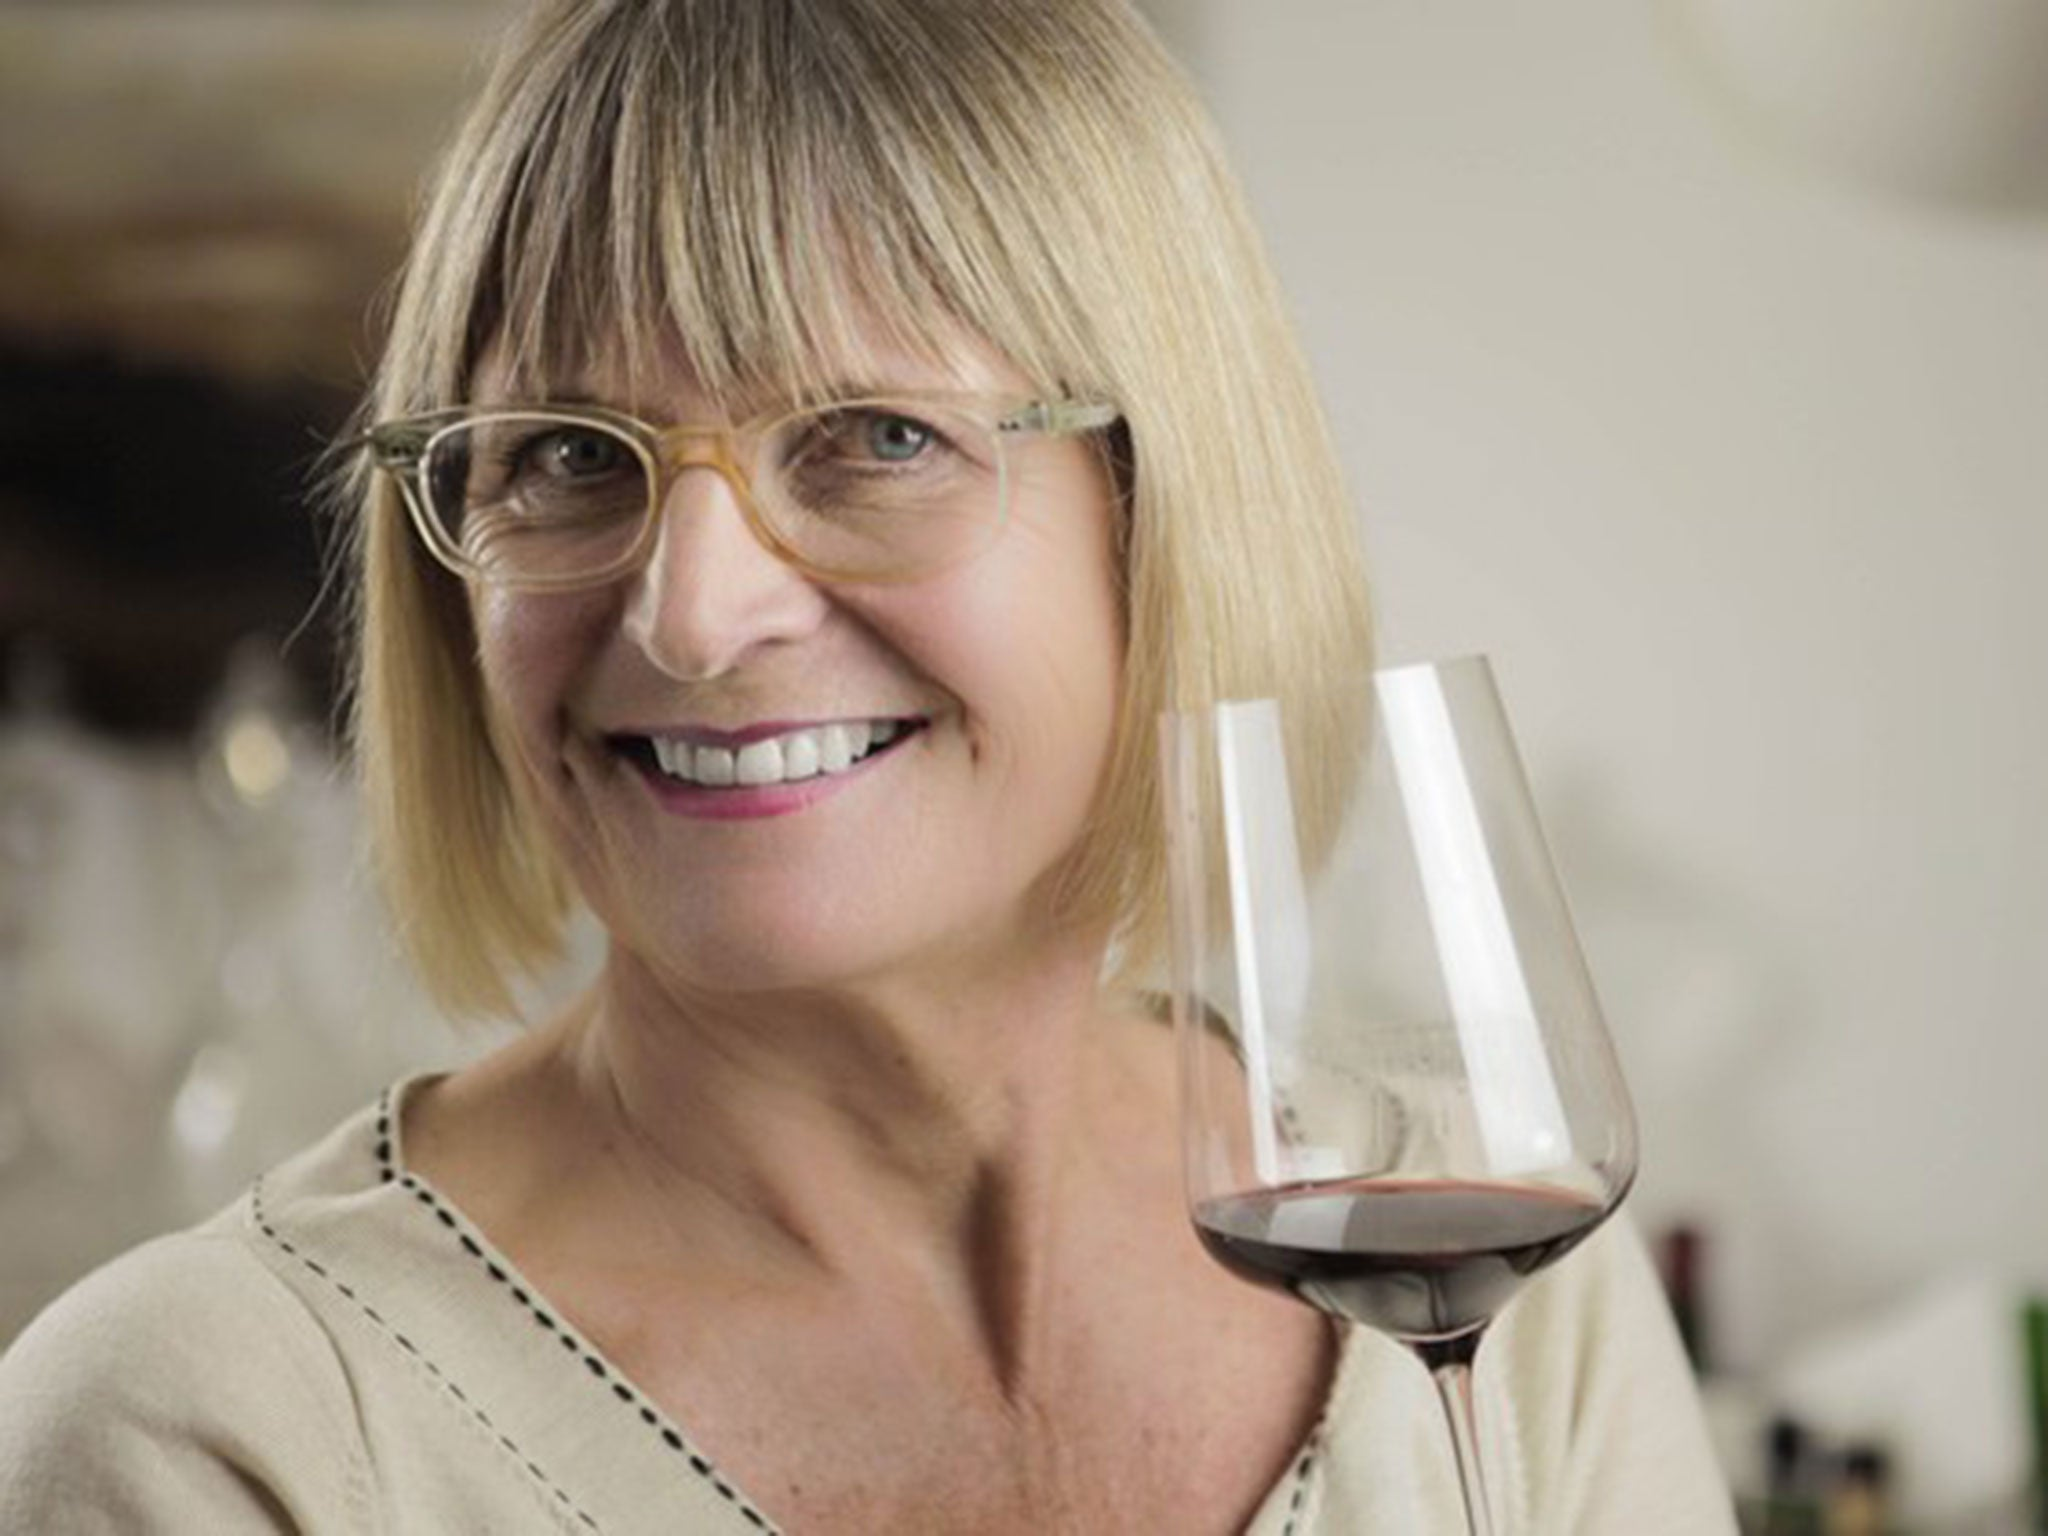 Drinks expert makes a surprising revelation about how you should drink red wine